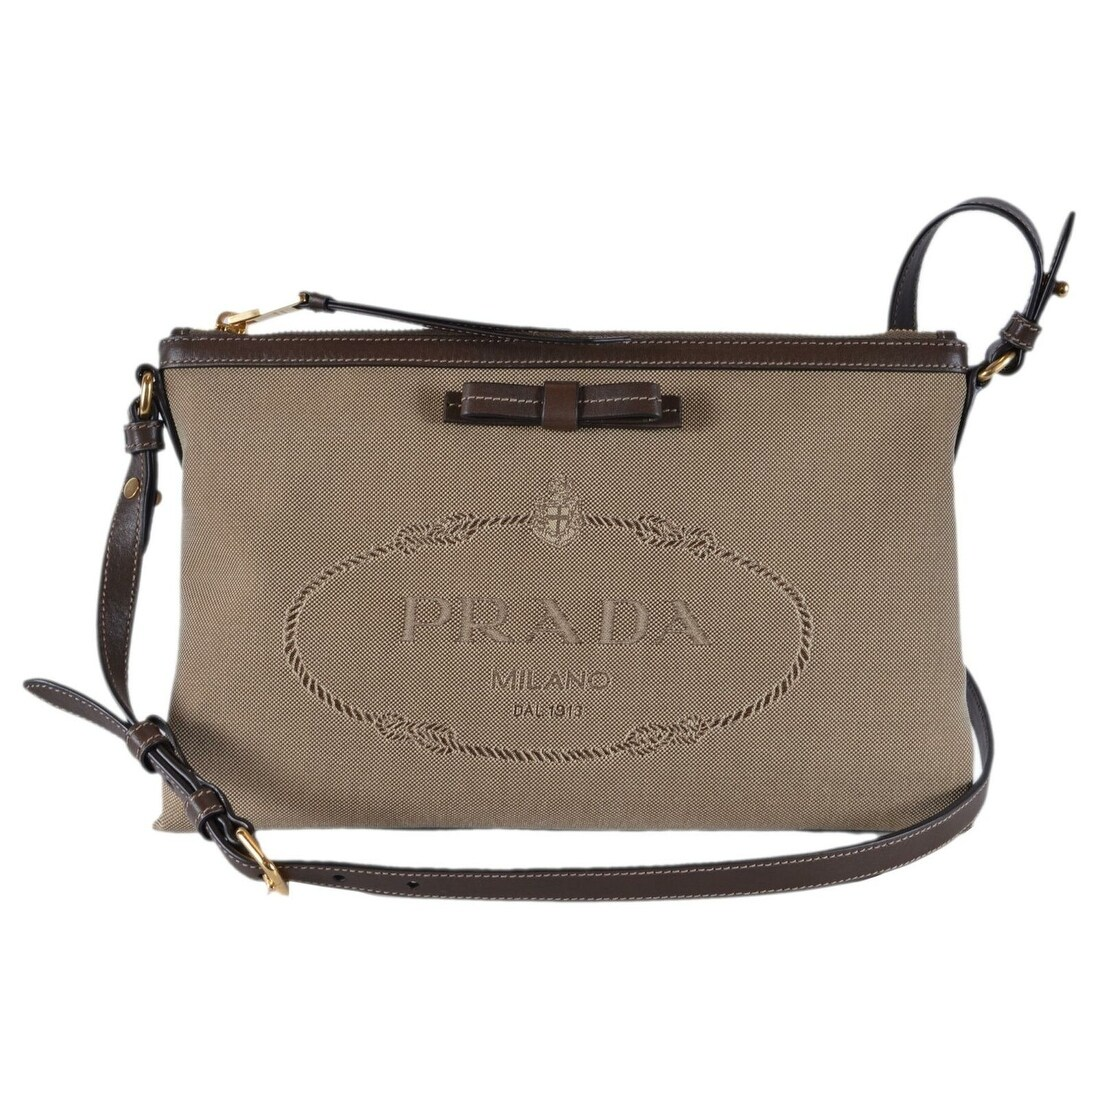 cb40a745d940d Shop Prada 1BH050 Bandoliera Logo Jacquard Crossbody Purse Clutch -  Beige Brown - Free Shipping Today - Overstock - 27095339